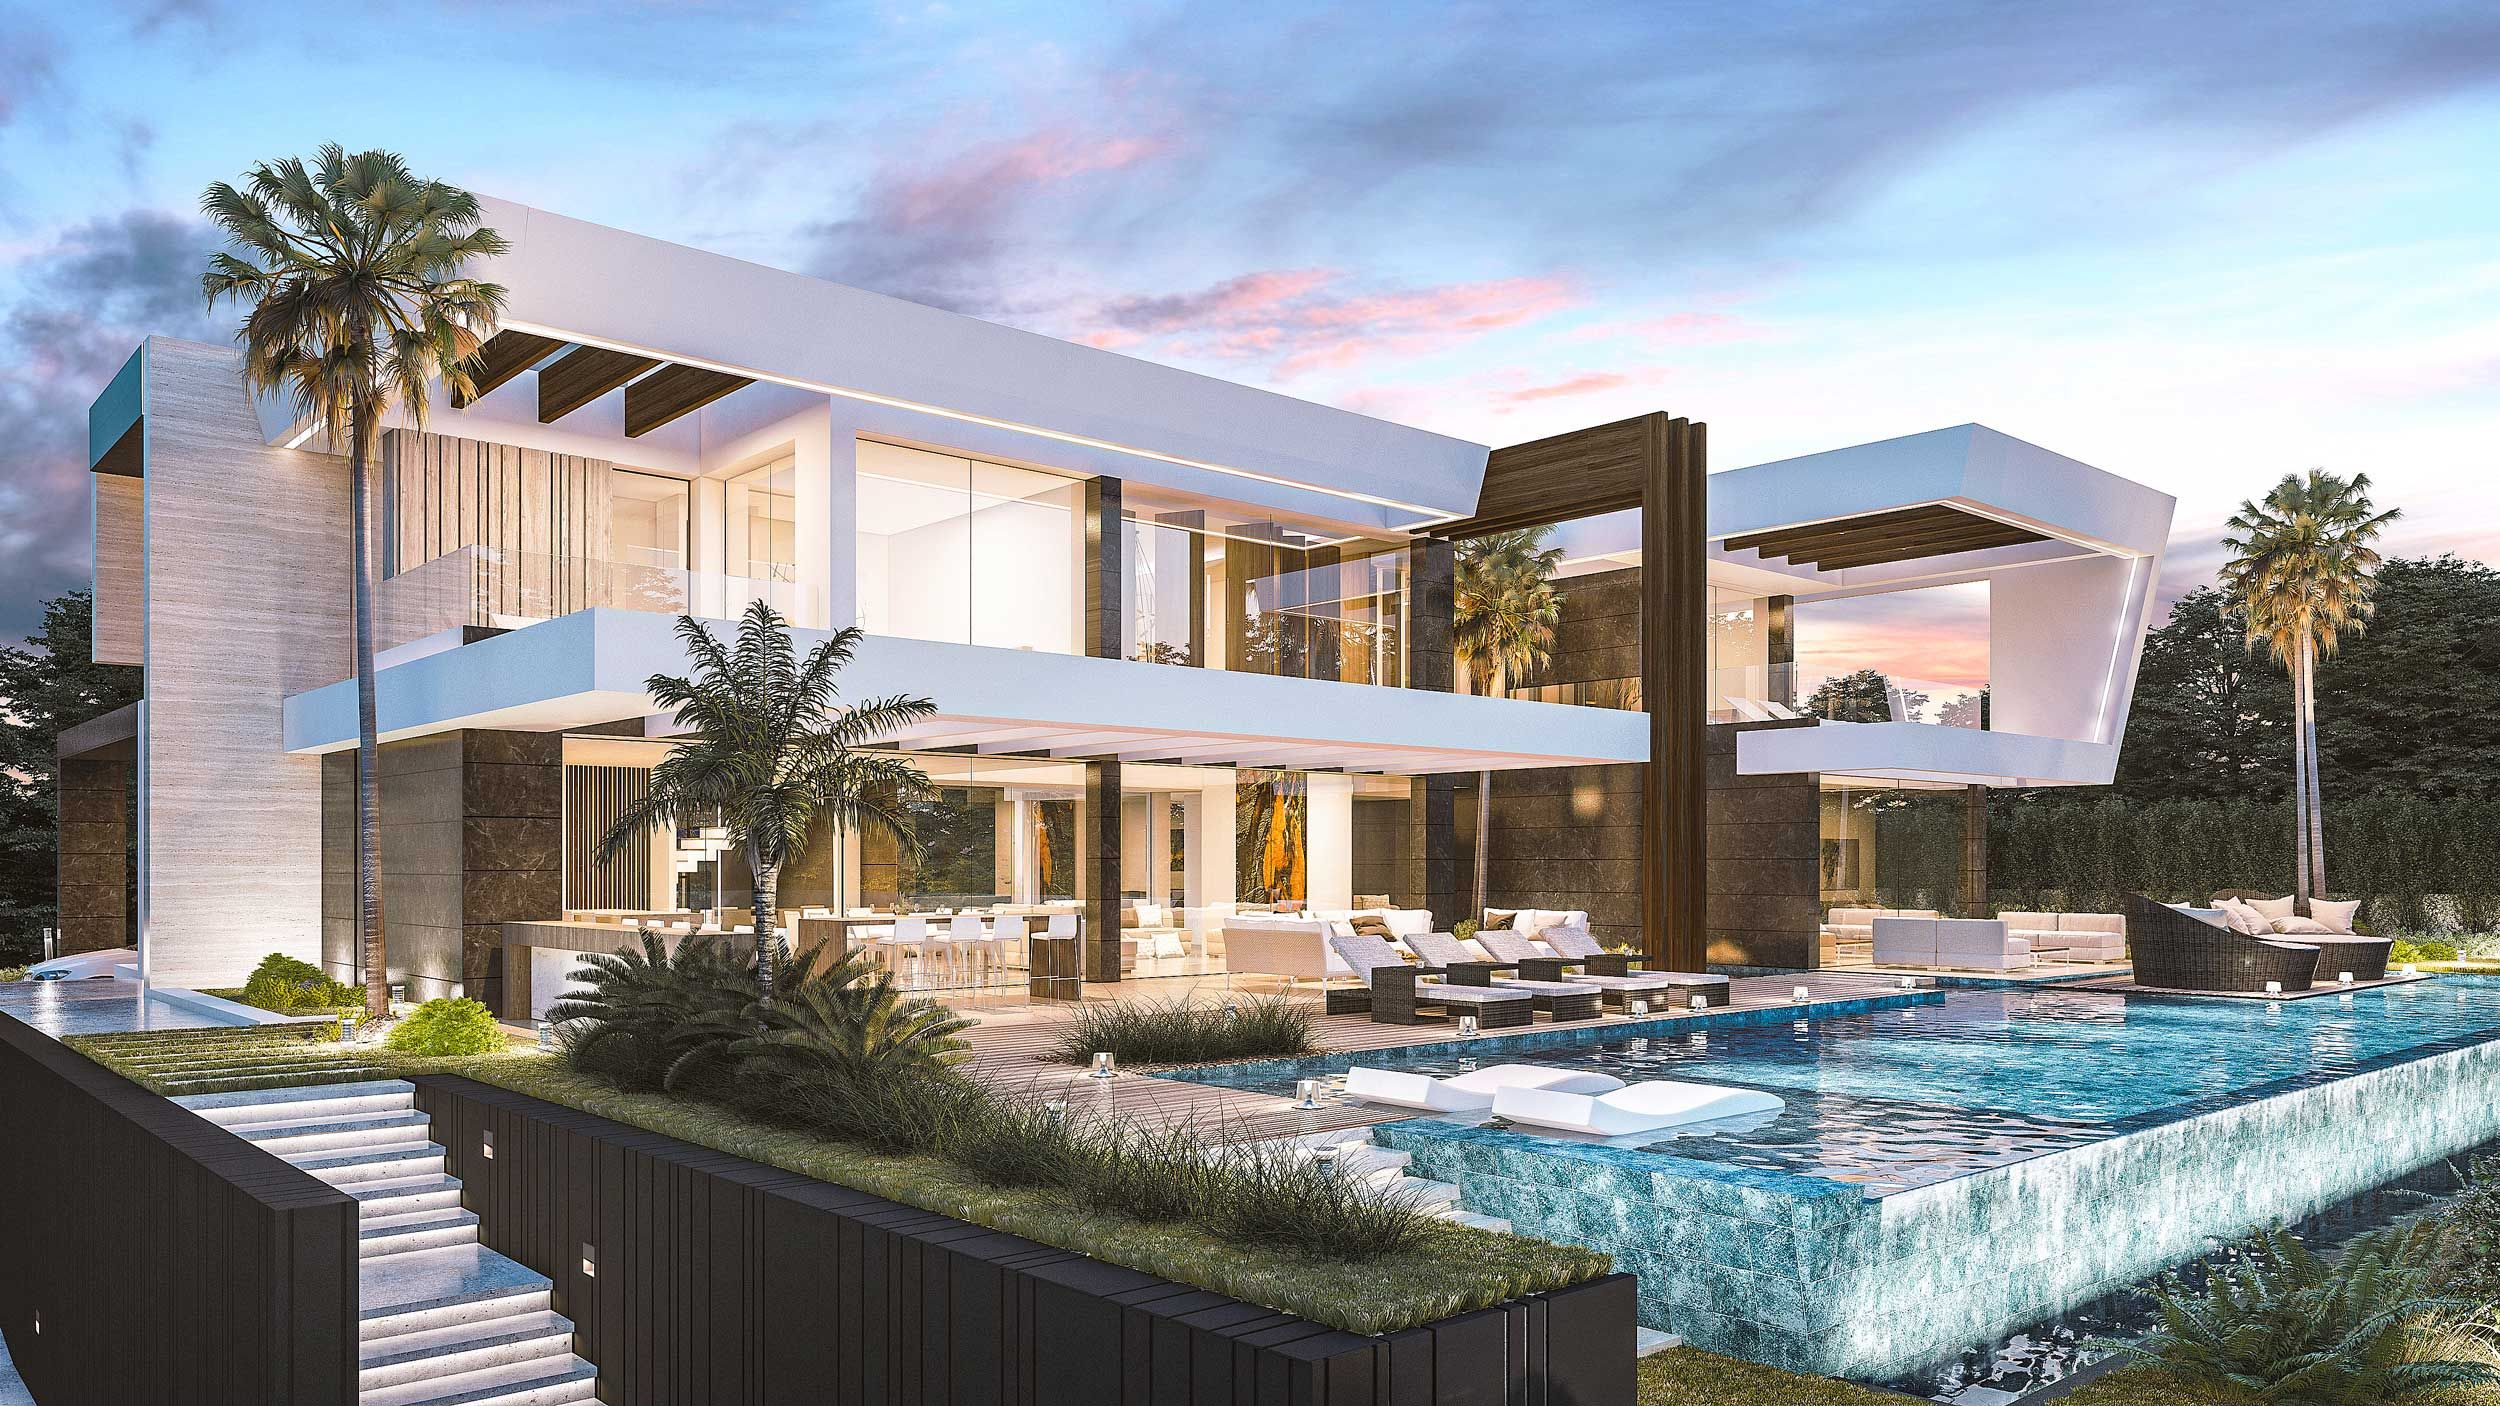 We Continue To Add Incredible Projects To Our Portfolio This Luxury Villa Has Been Designed Luxury Modern Homes Luxury Homes Dream Houses Dream House Exterior